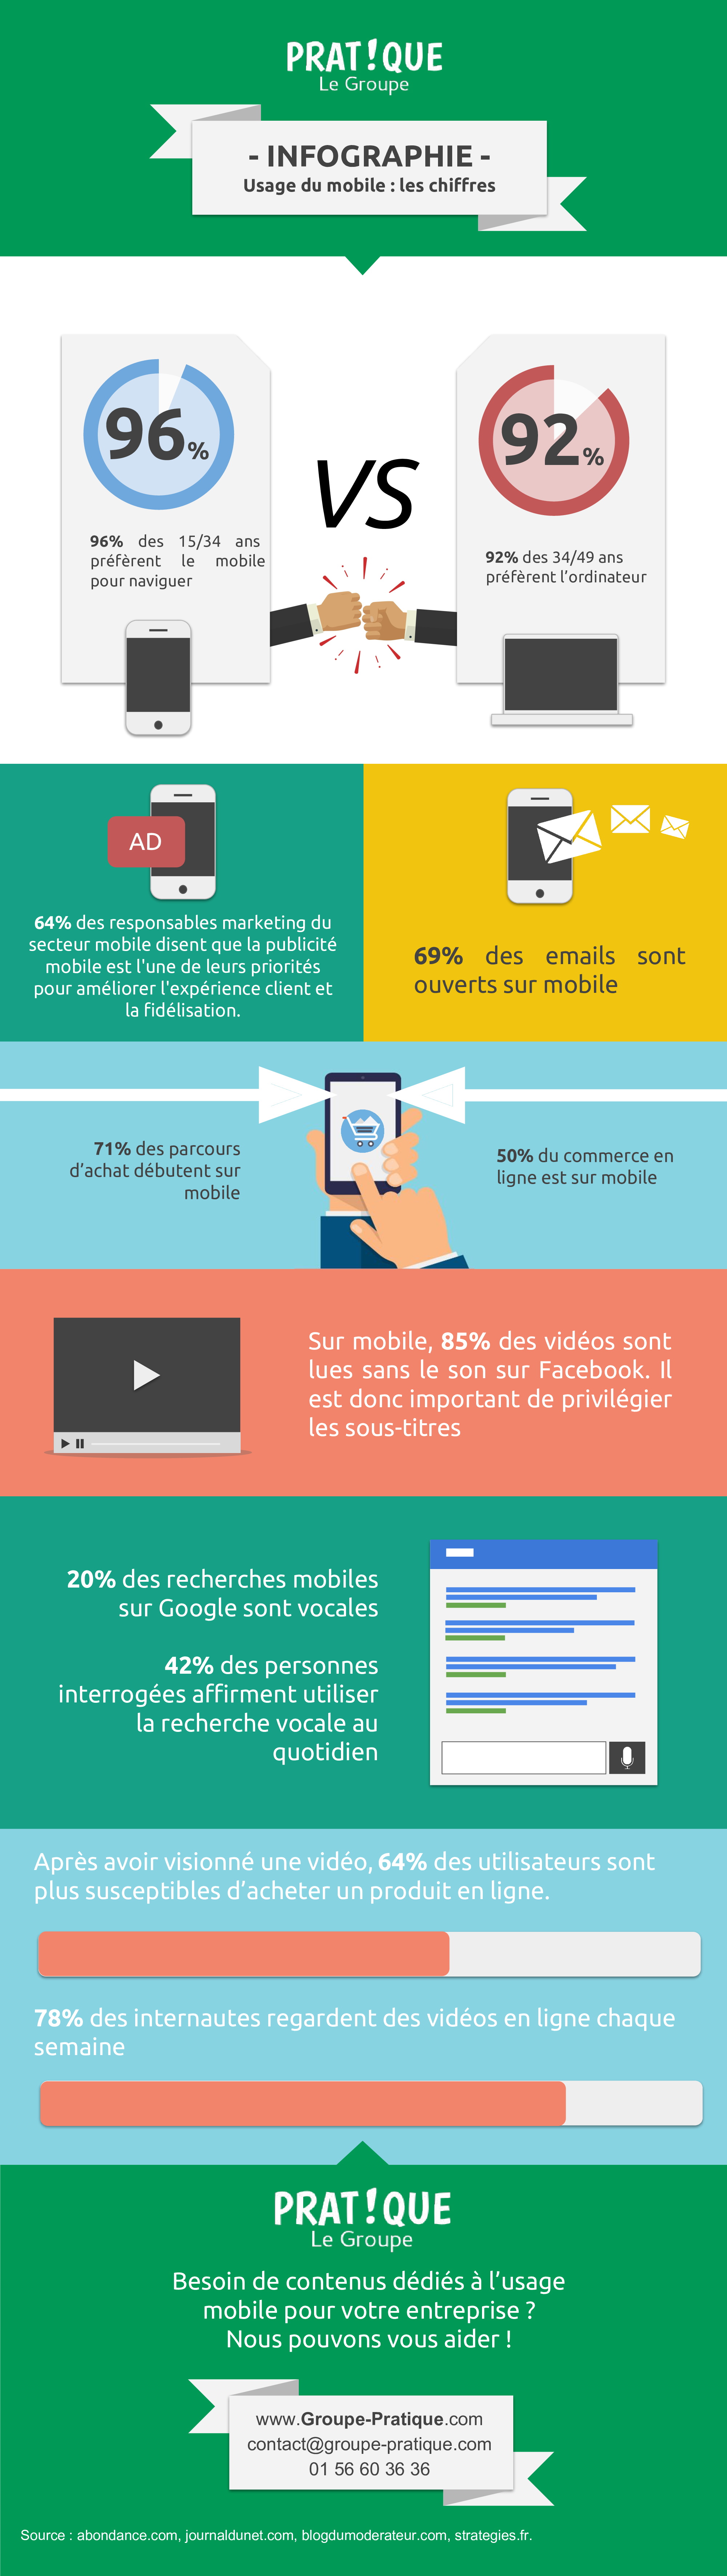 L'utilisation du mobile marketing et du chatbot